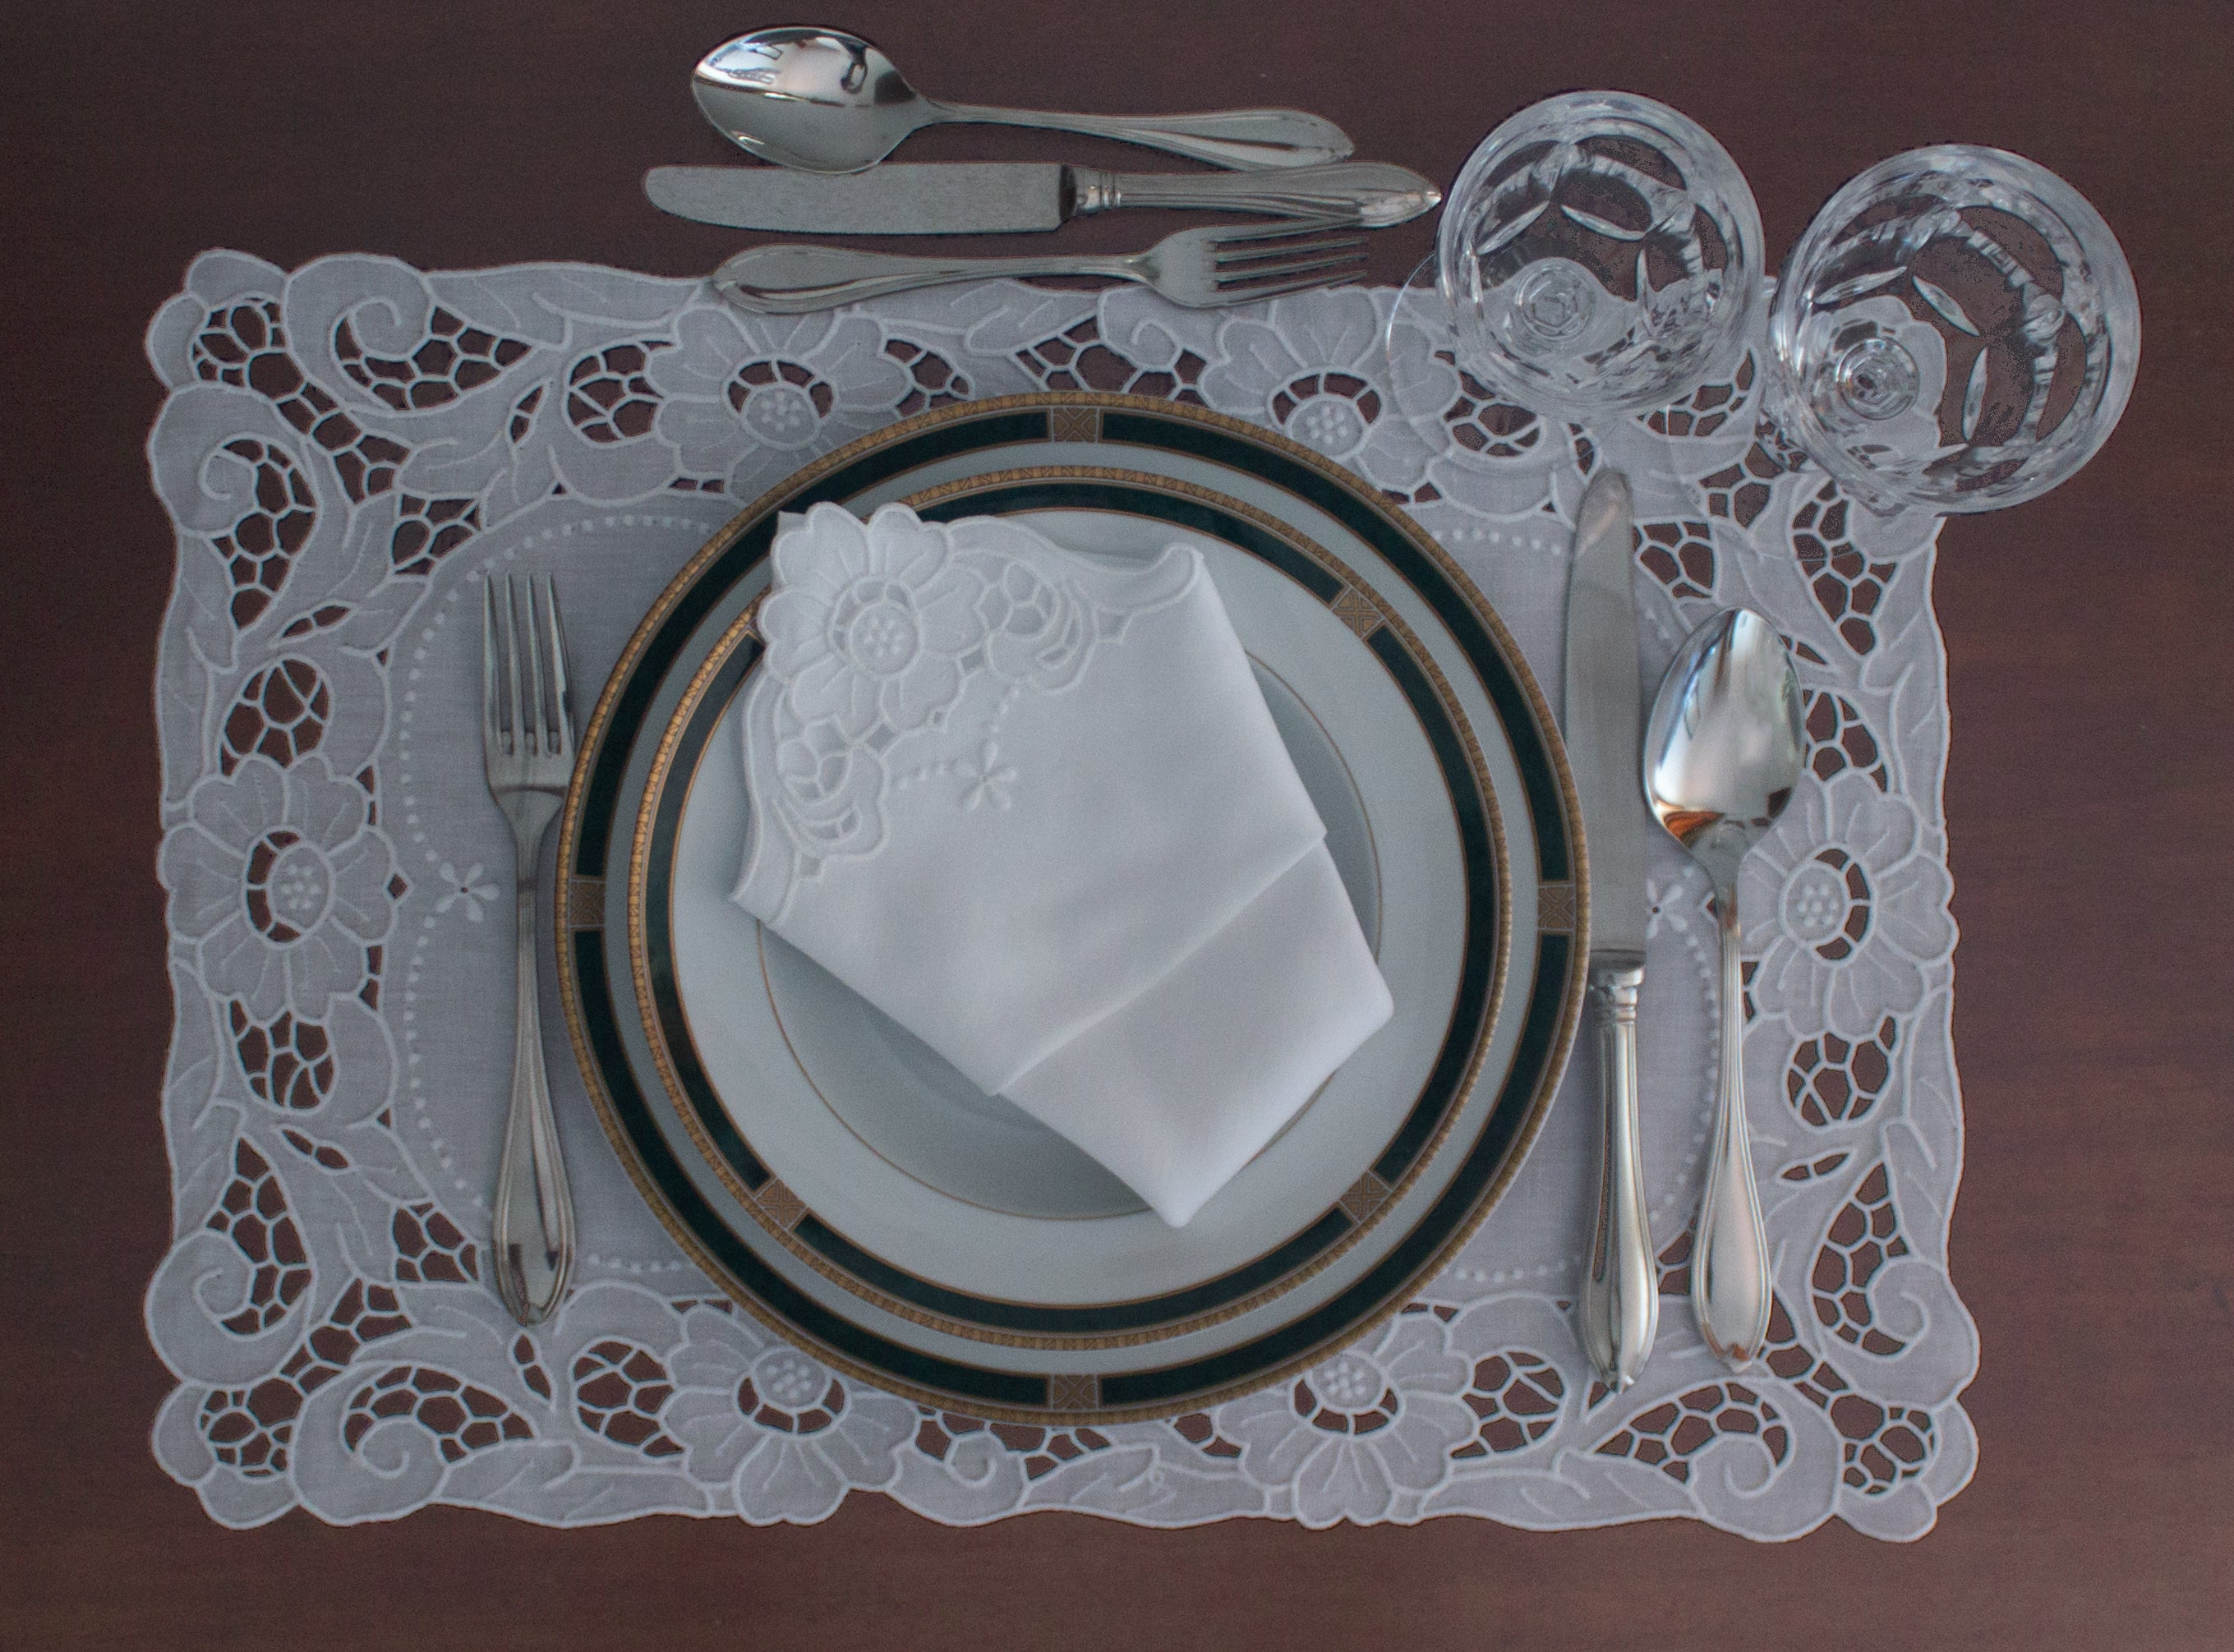 Handmade Madeira Embroidered White Placemat and Napkin